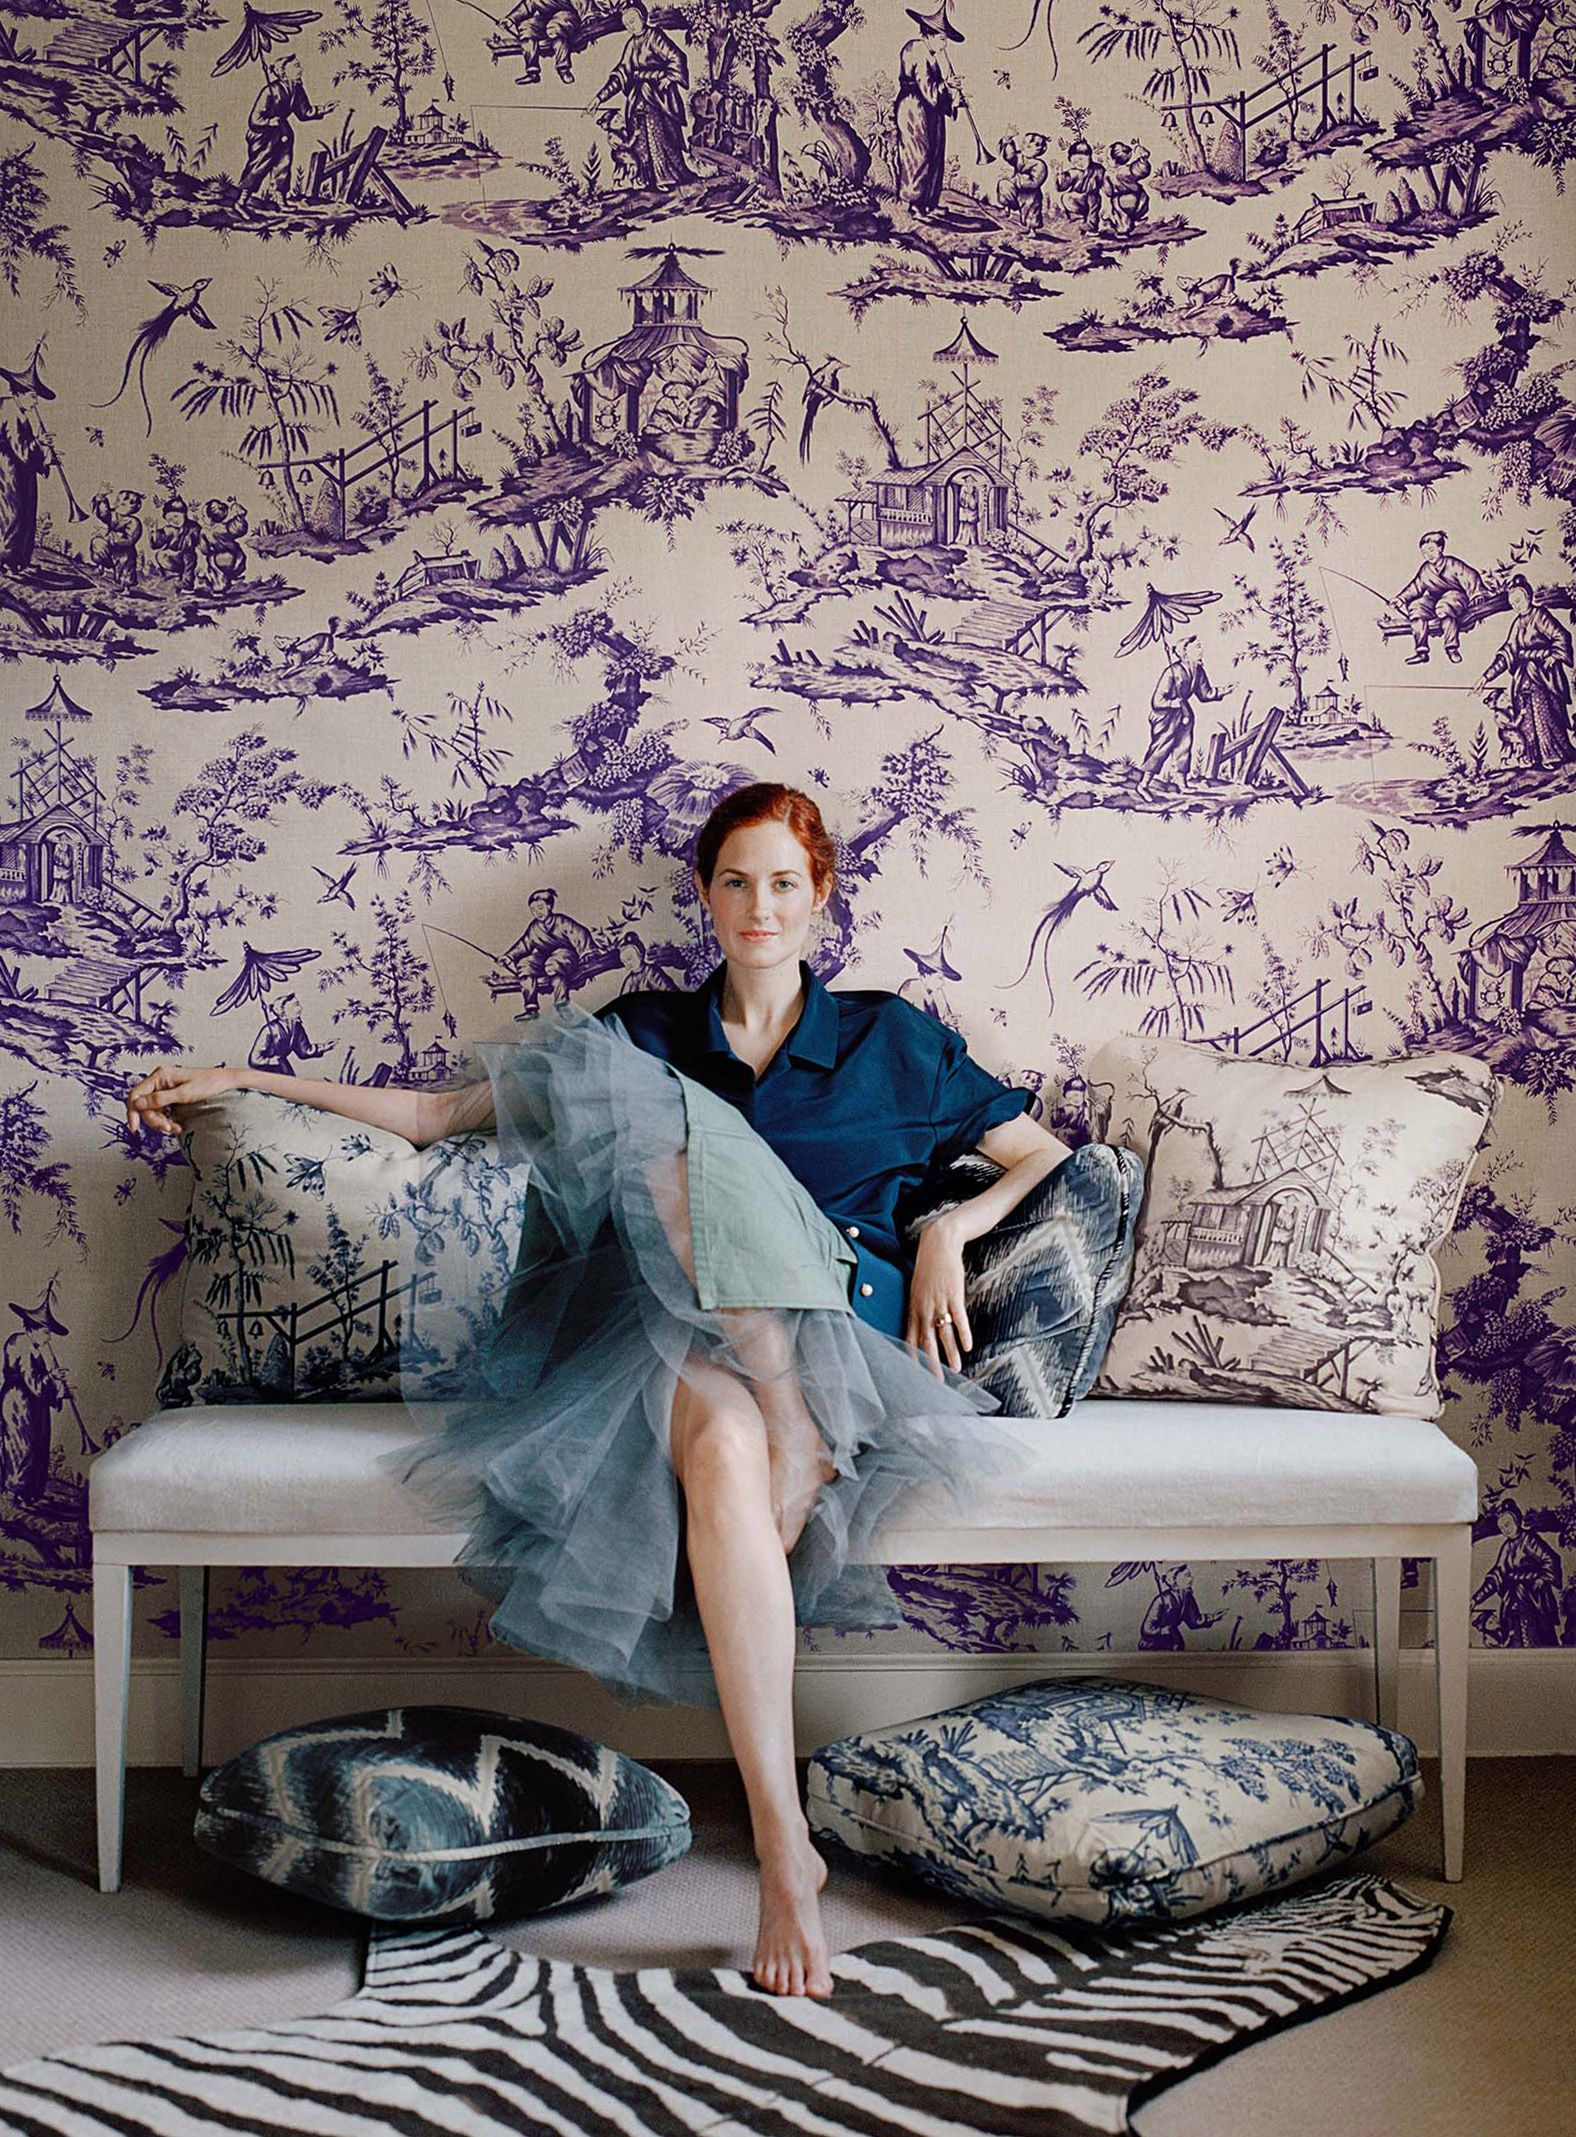 All Things Toile on Pinterest | 350 Pins